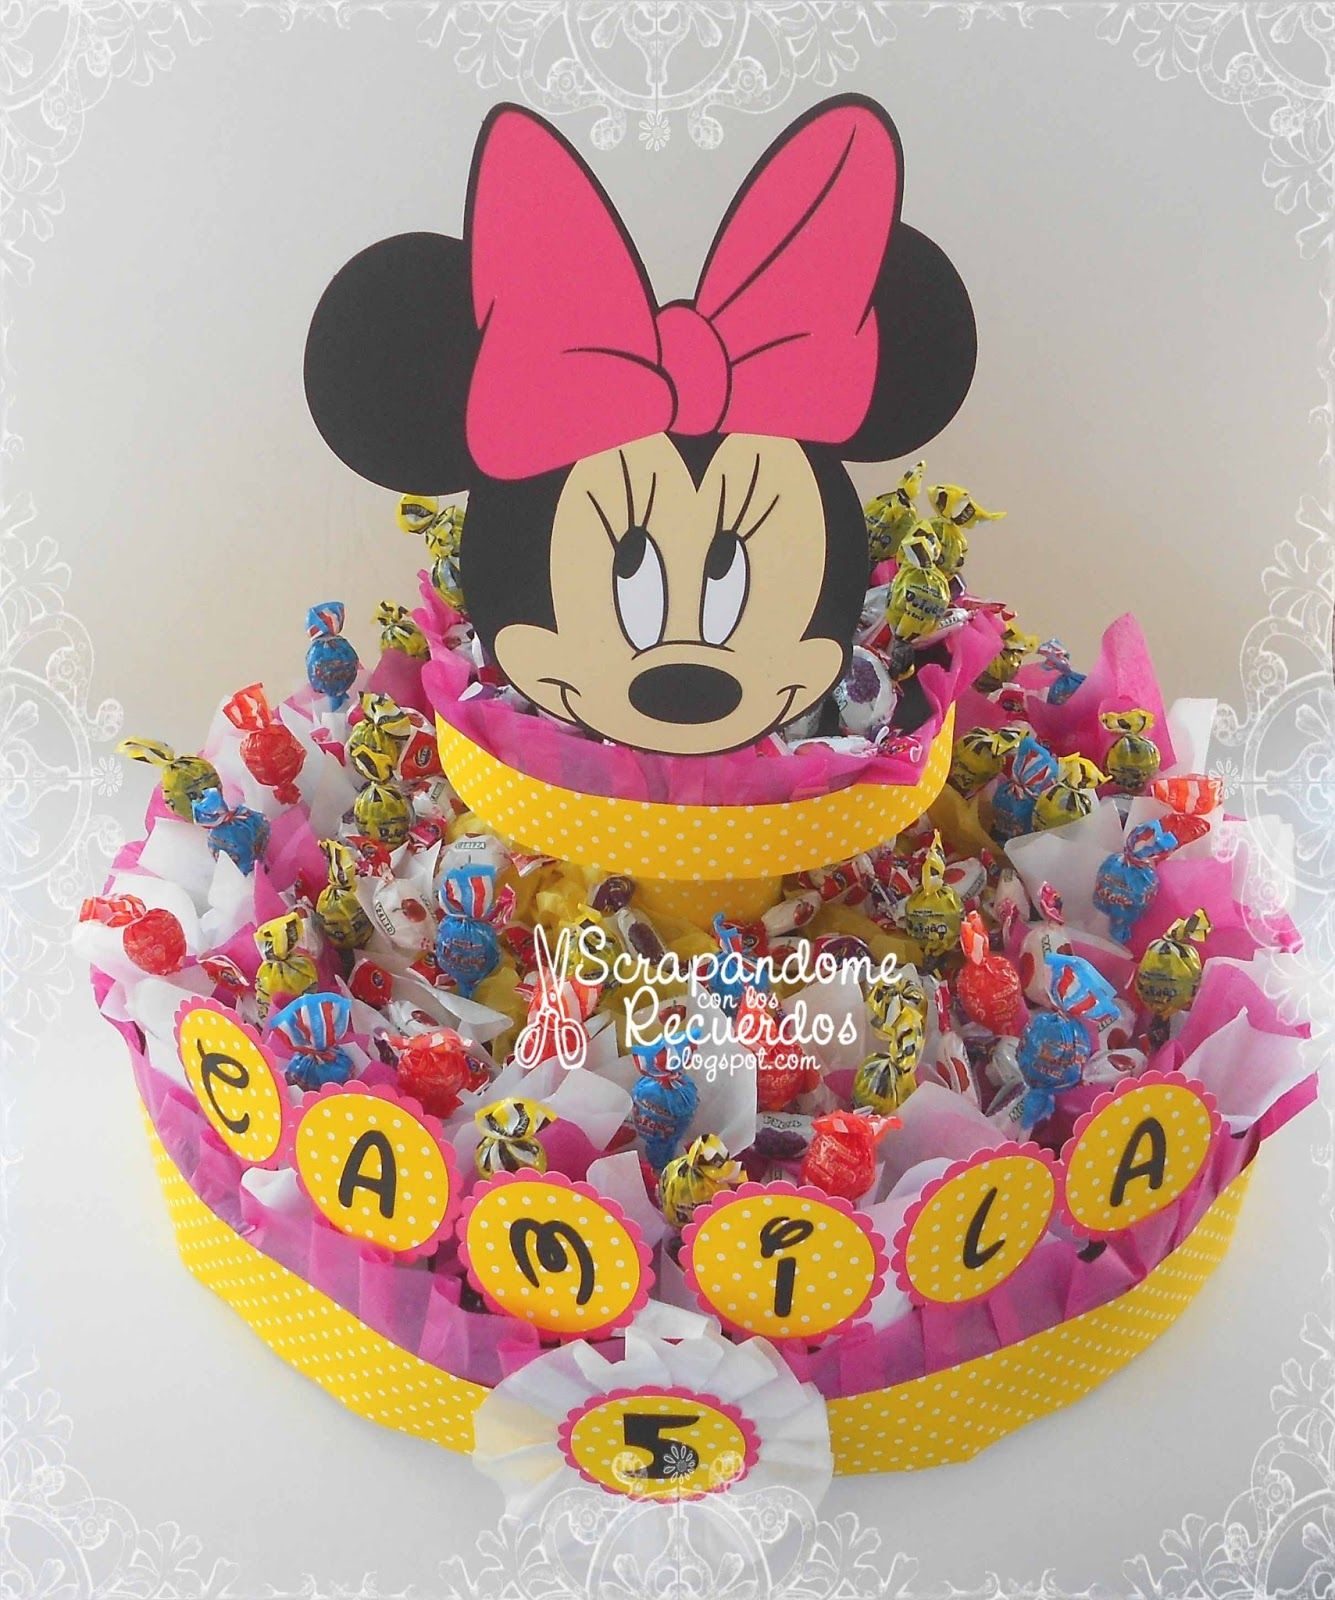 Scrapandome Con Los Recuerdos: Minnie Mouse Party - Camila Cumple ...